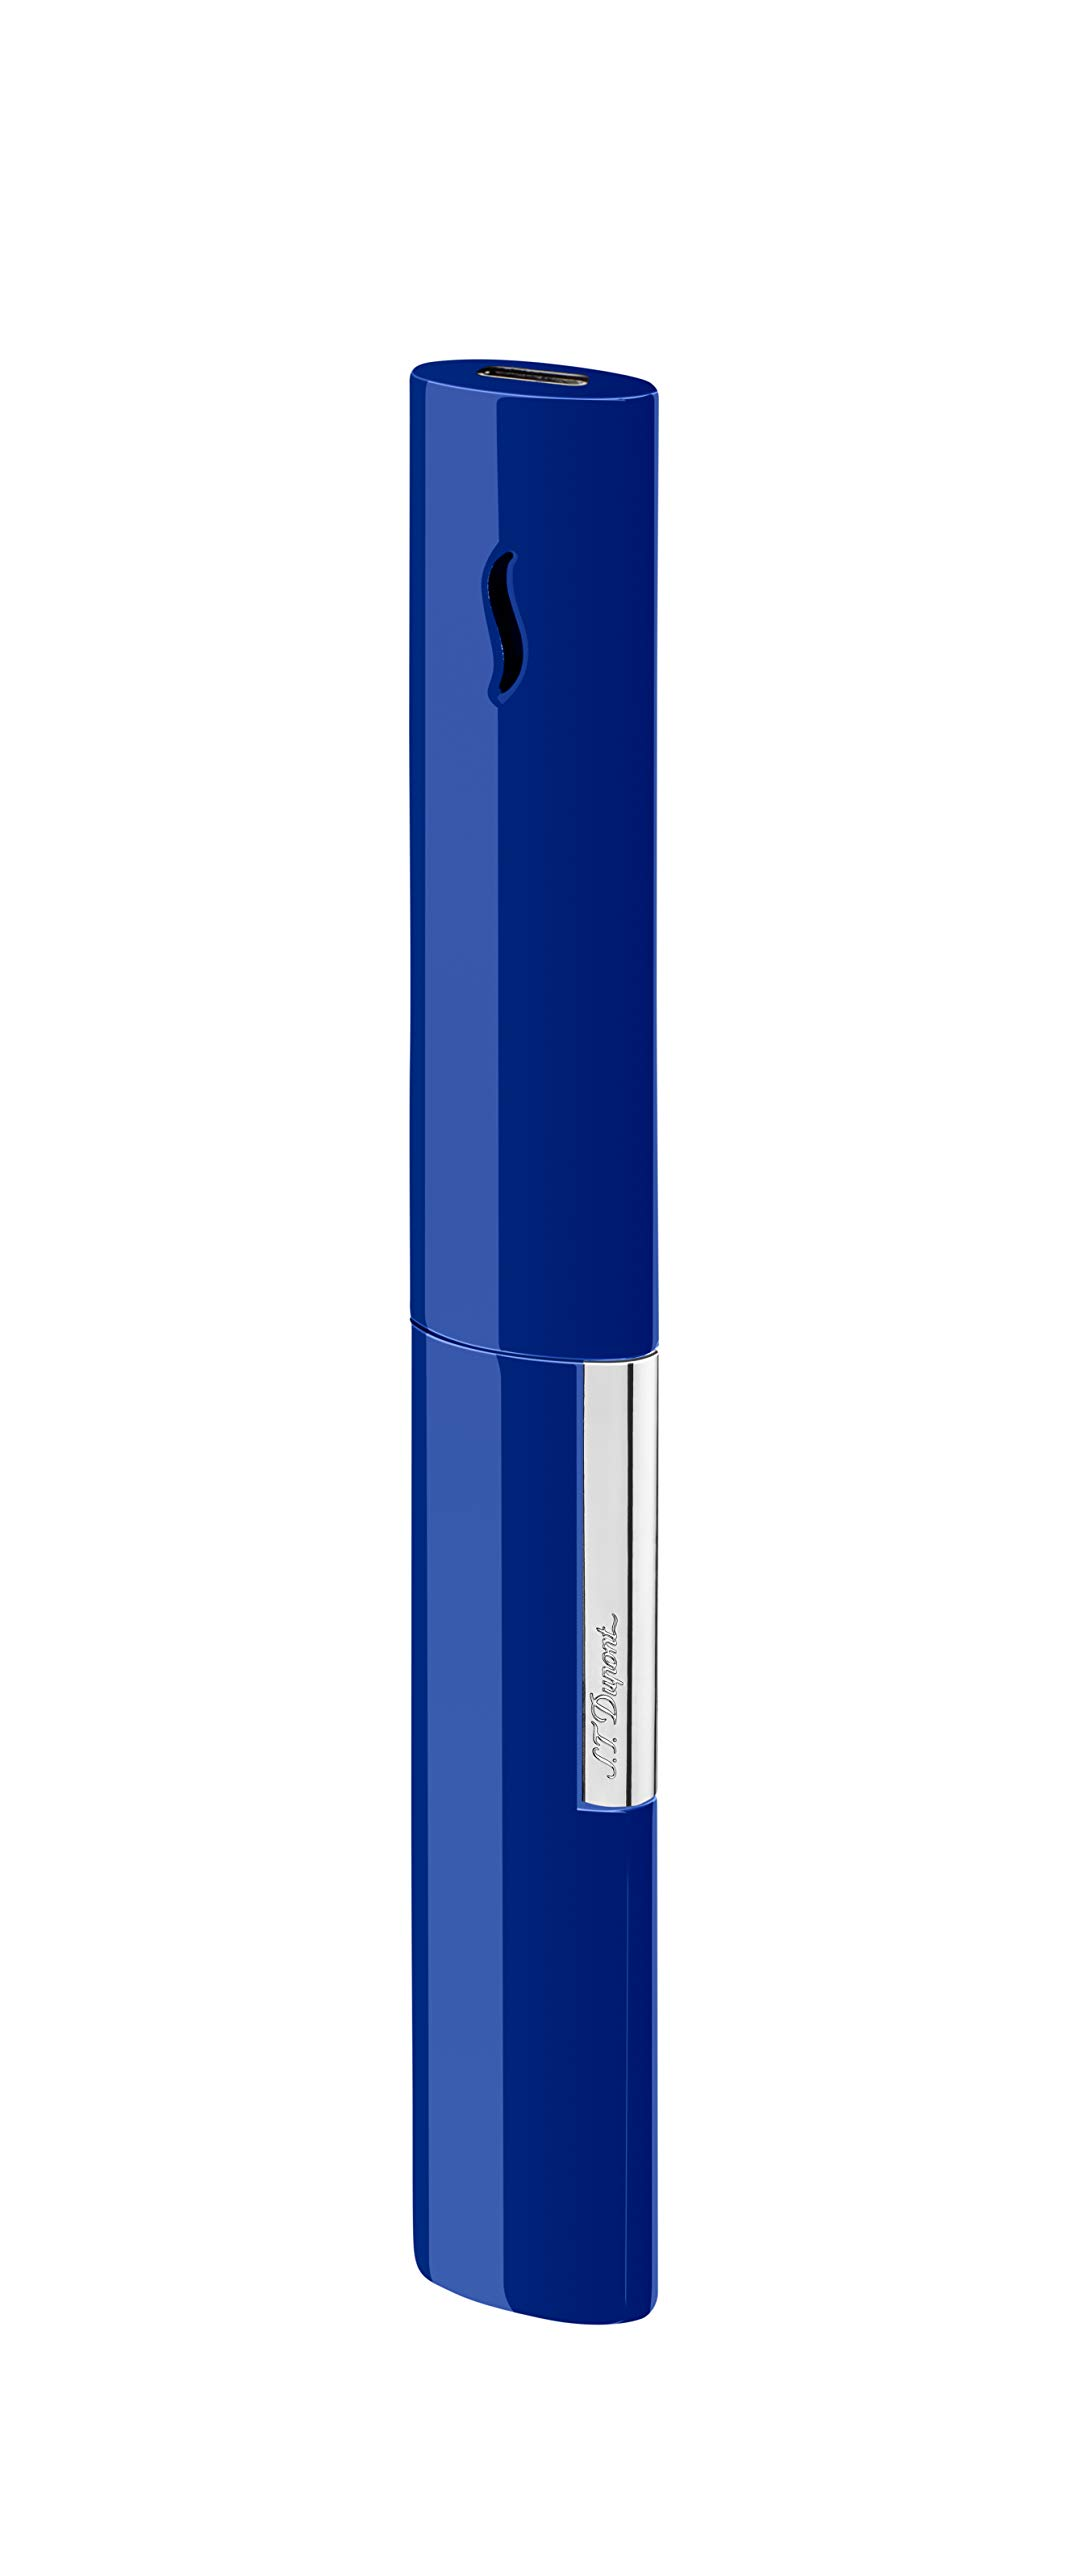 S.T. Dupont Blue/Chrome Luxury Lighter The Wand